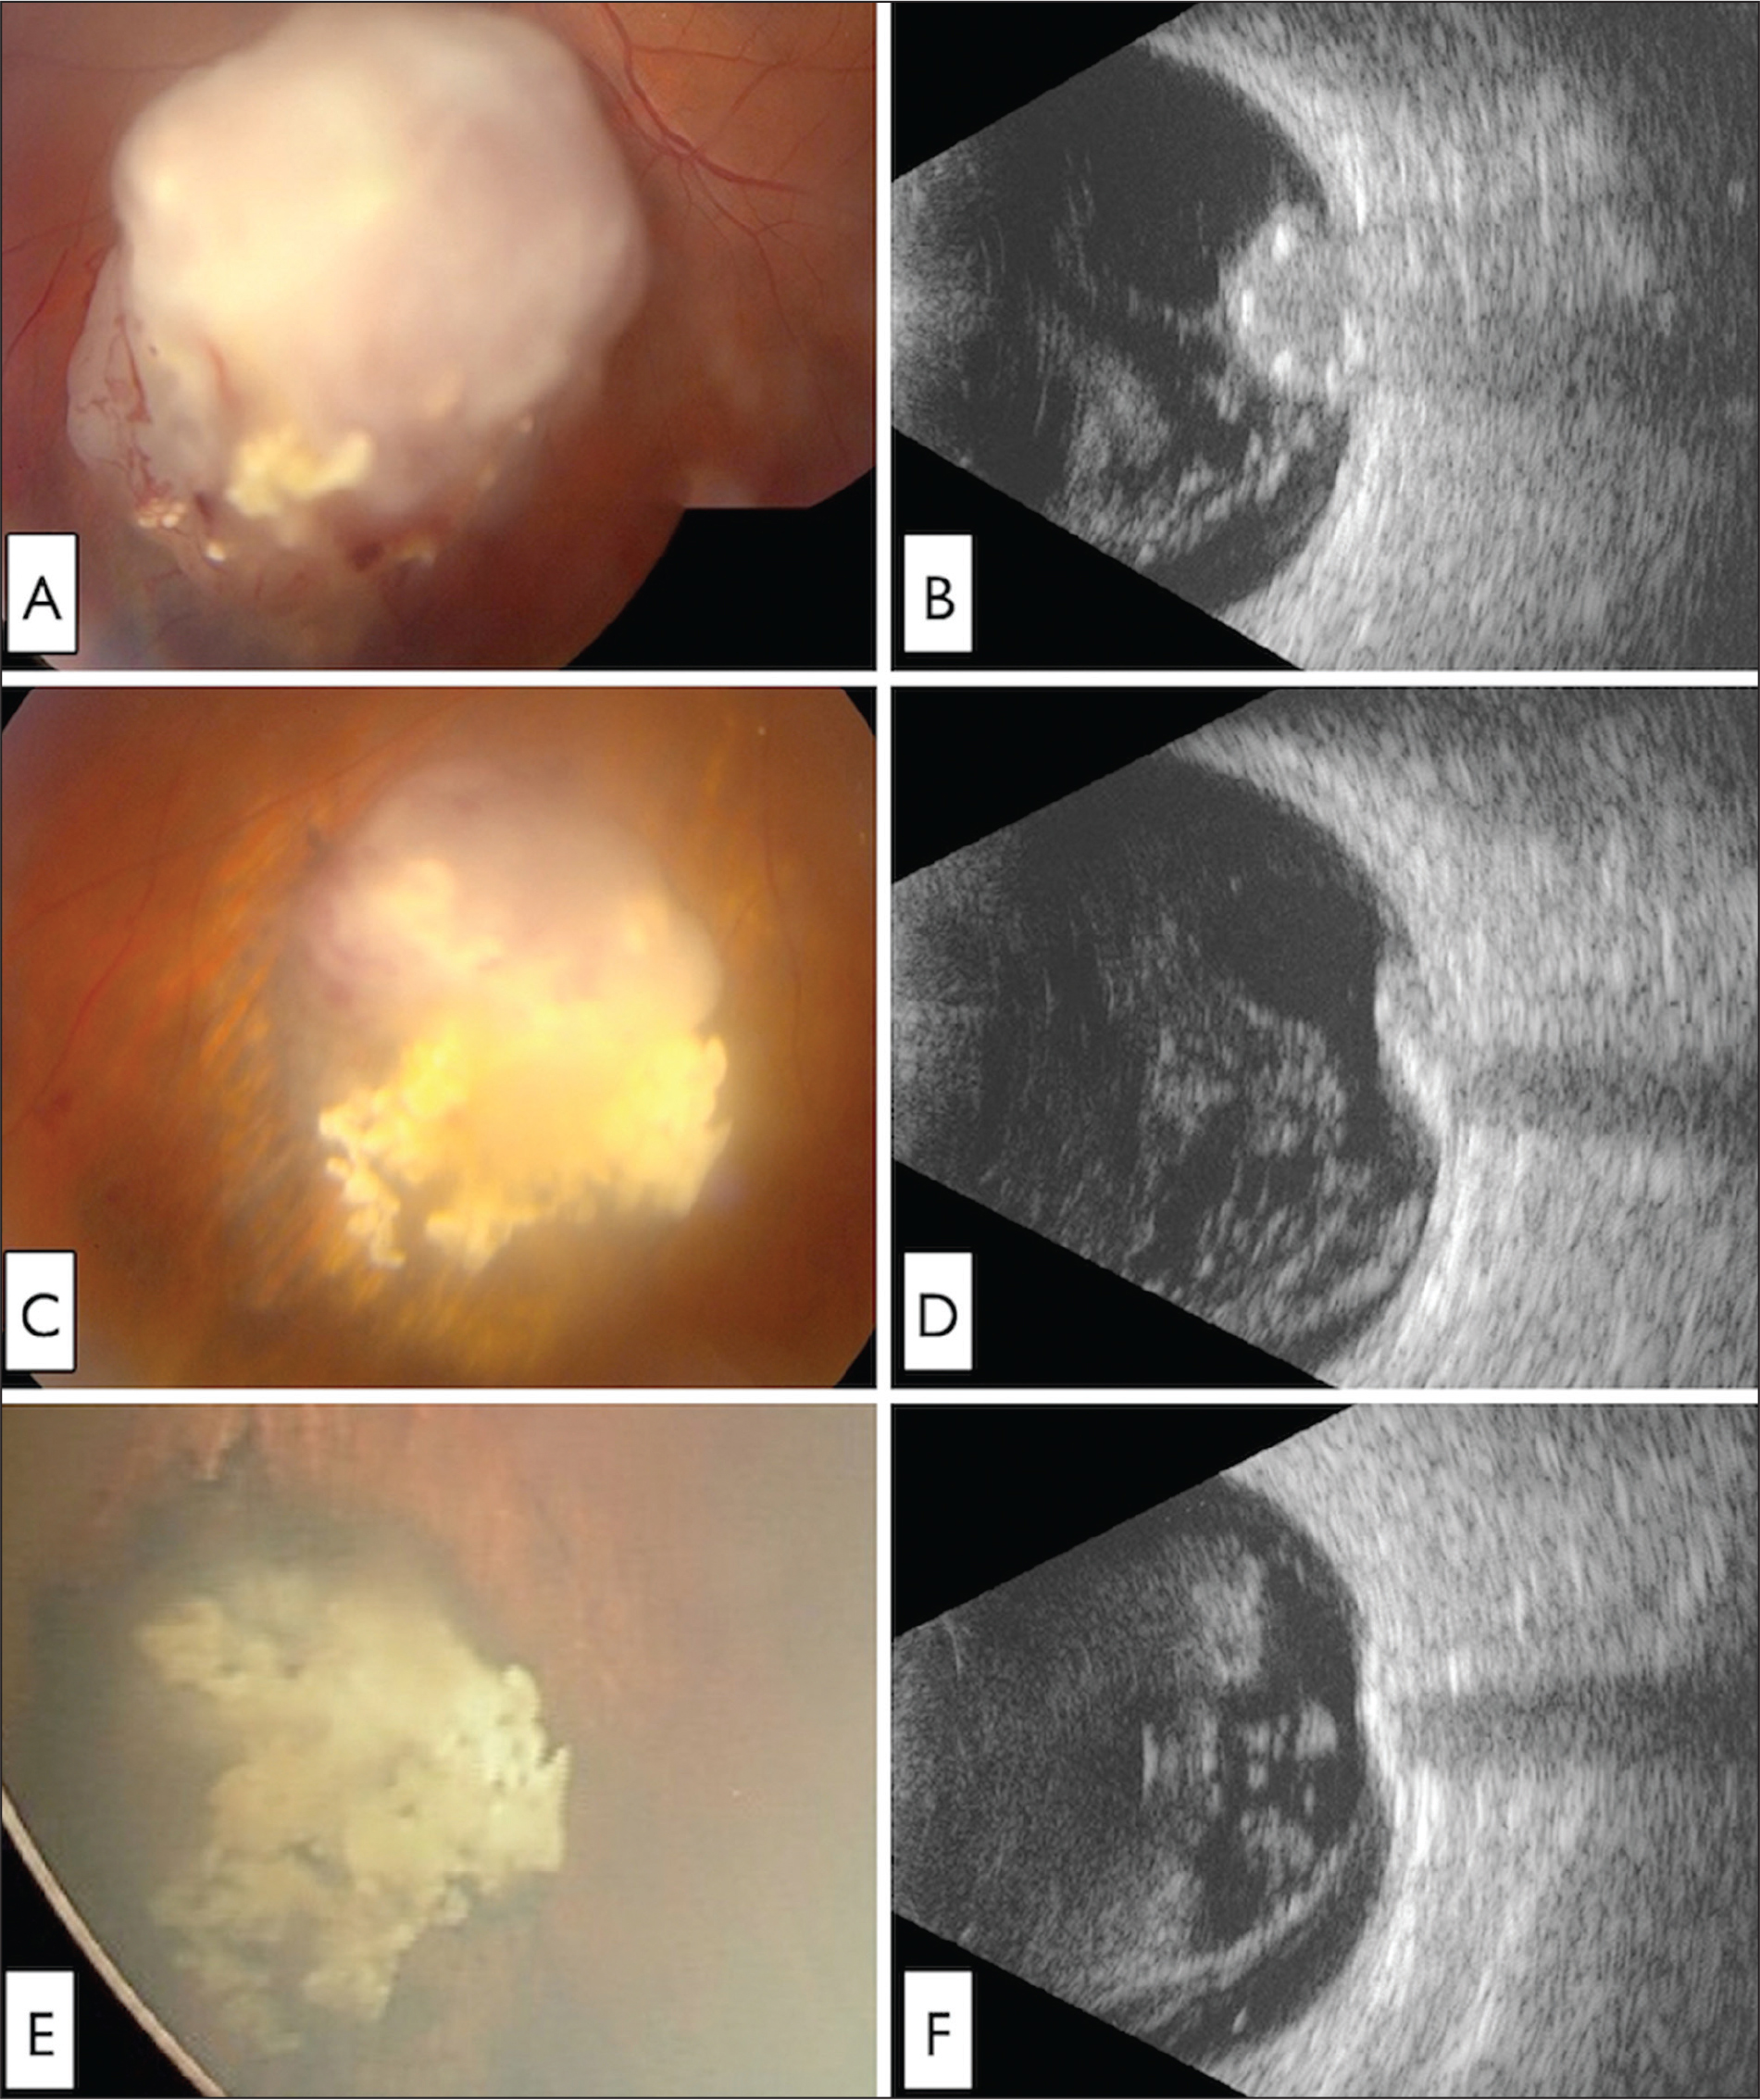 A 28-year-old man was newly diagnosed with group D retinoblastoma in the left eye. At presentation [elsewhere], retinoblastoma measured 11 mm in basal dimension and 6.8 mm in thickness with (A) extensive vitreous seeding, best documented on (B) ultrasonography. External beam radiotherapy (EBRT) was provided. Following EBRT, (C) tumor recurrence on the posterior margin with (D) recurrent vitreous seeding was documented. Intra-arterial chemotherapy was provided with complete resolution of tumor and vitreous seeds. Following intra-arterial chemotherapy, (E) tumor regression was documented and (F) all vitreous seeds were calcified. Later, minor solid tumor recurrence necessitated plaque radiotherapy and the tumor has remained regressed for 32 months following intra-arterial chemotherapy.